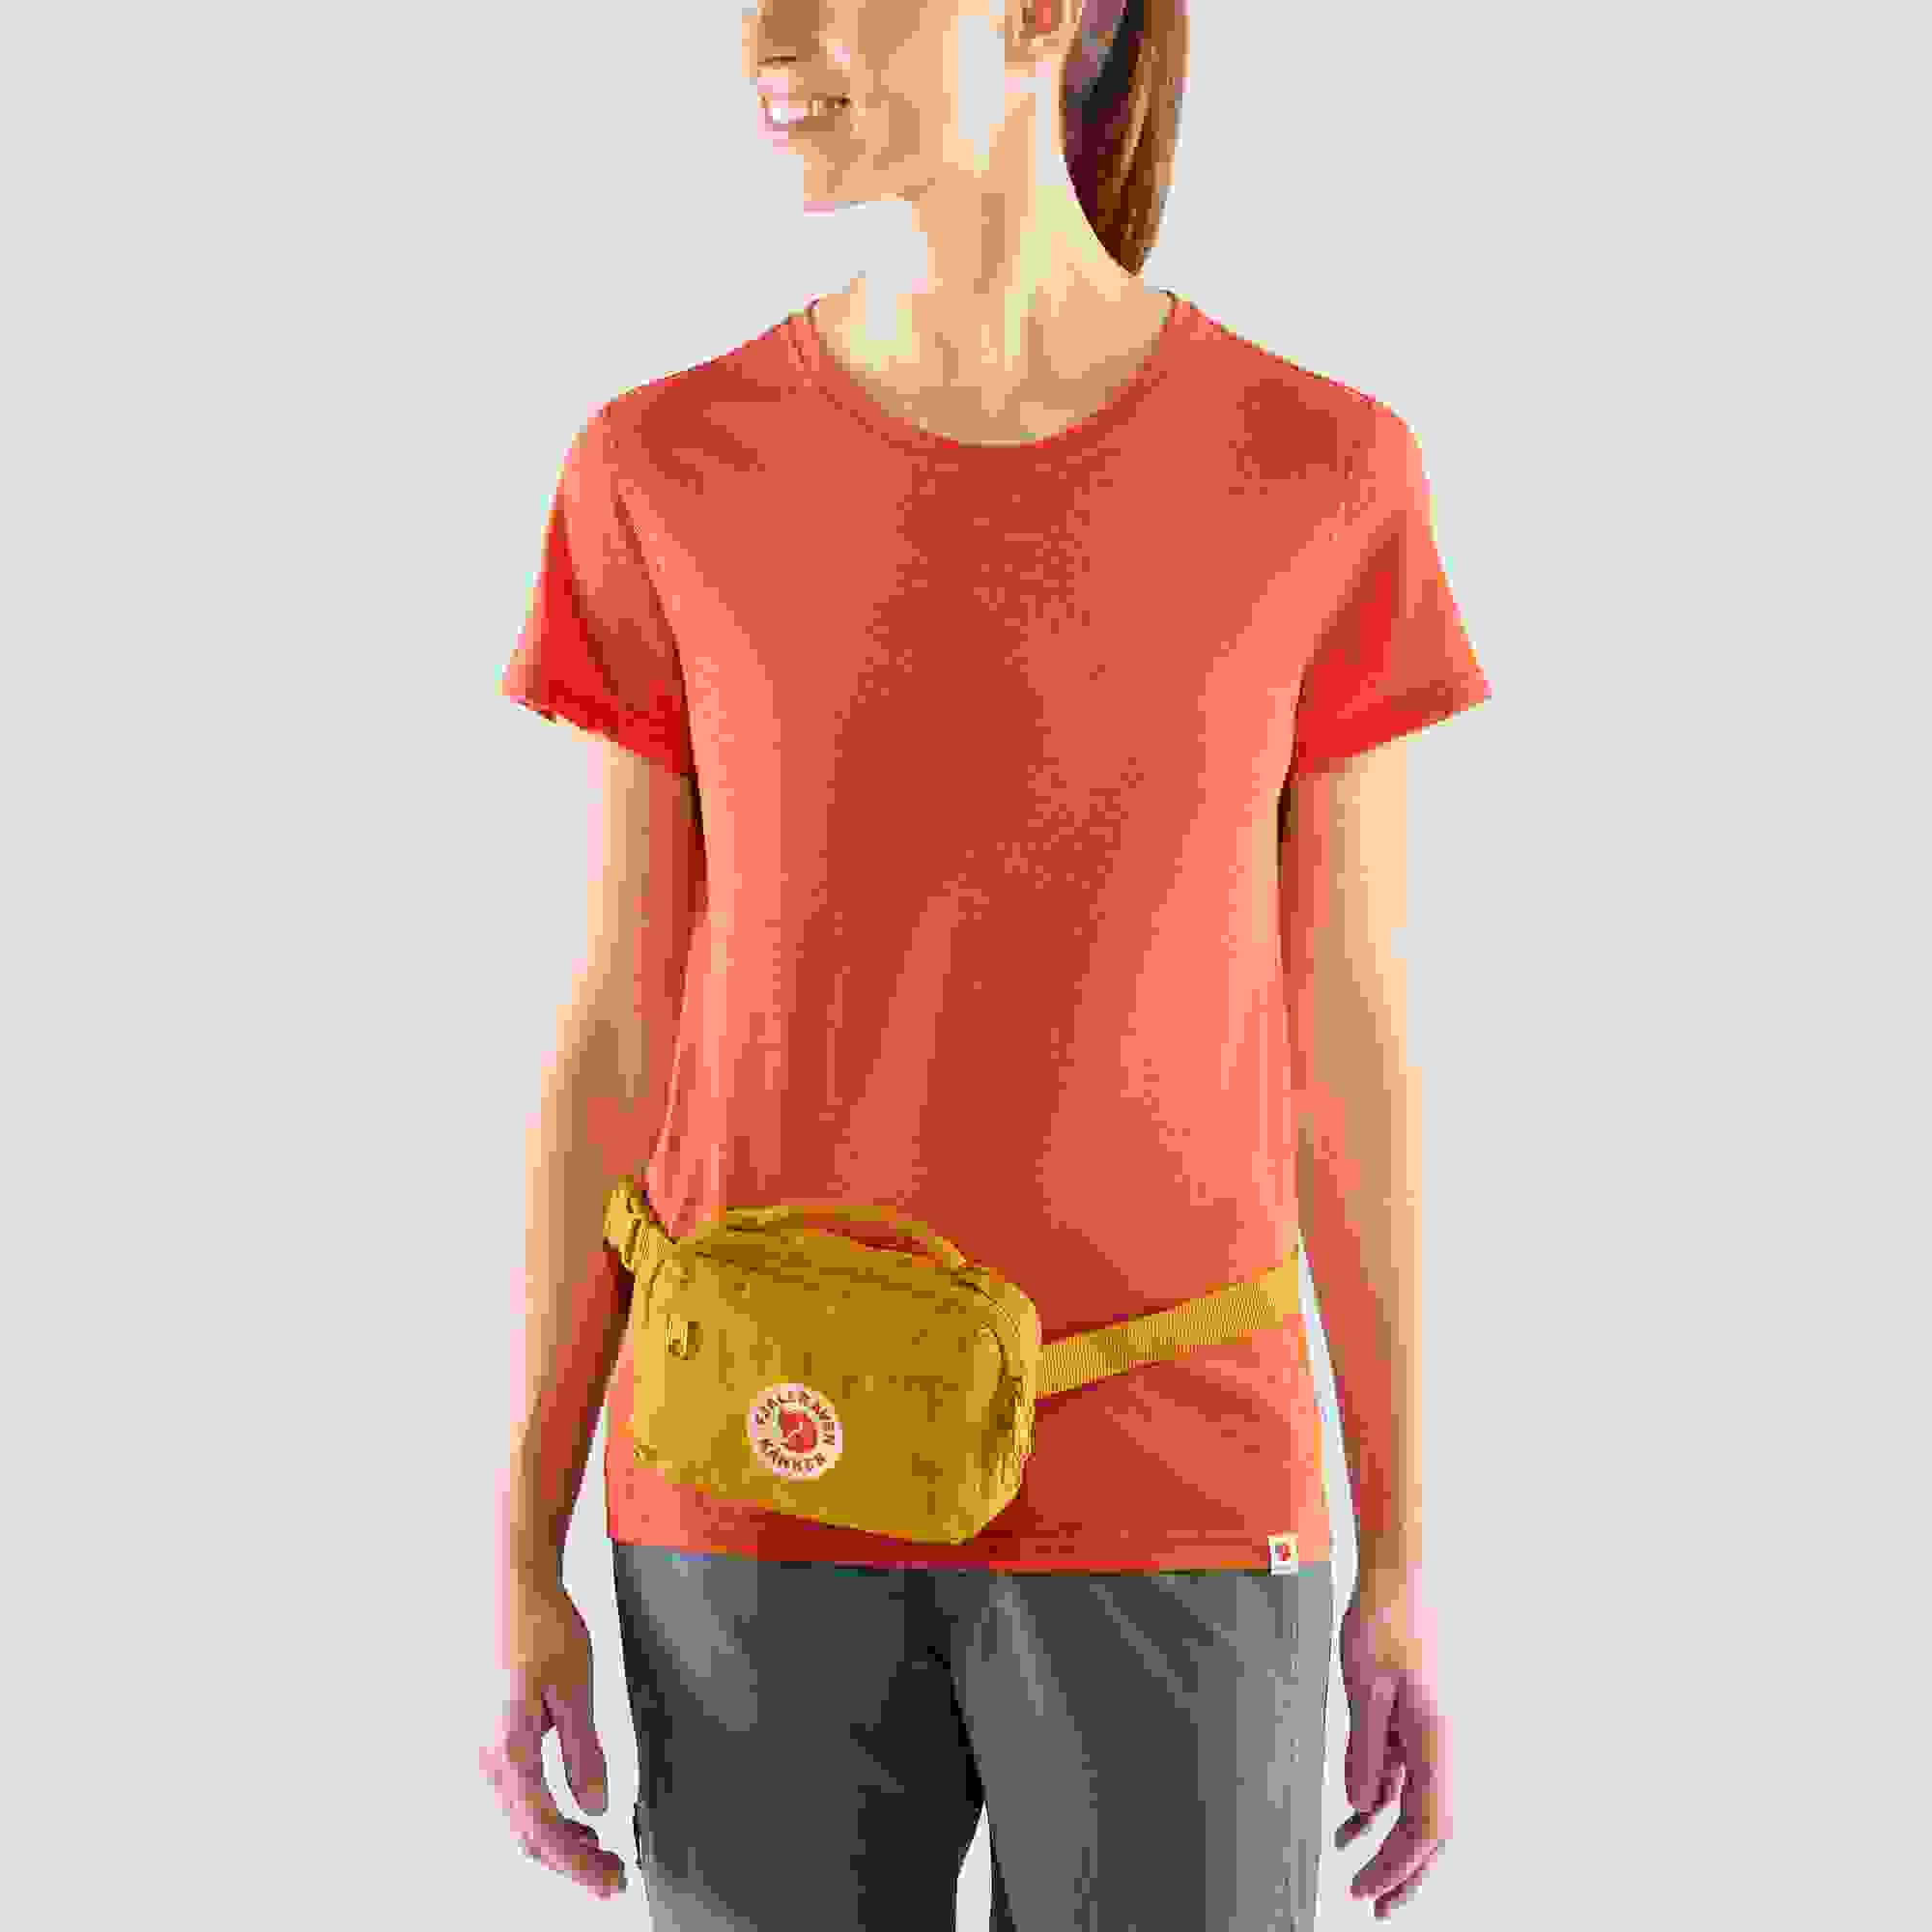 Fjallraven Kanken Hip Pack with Waist Belt for Everyday Use and Travel